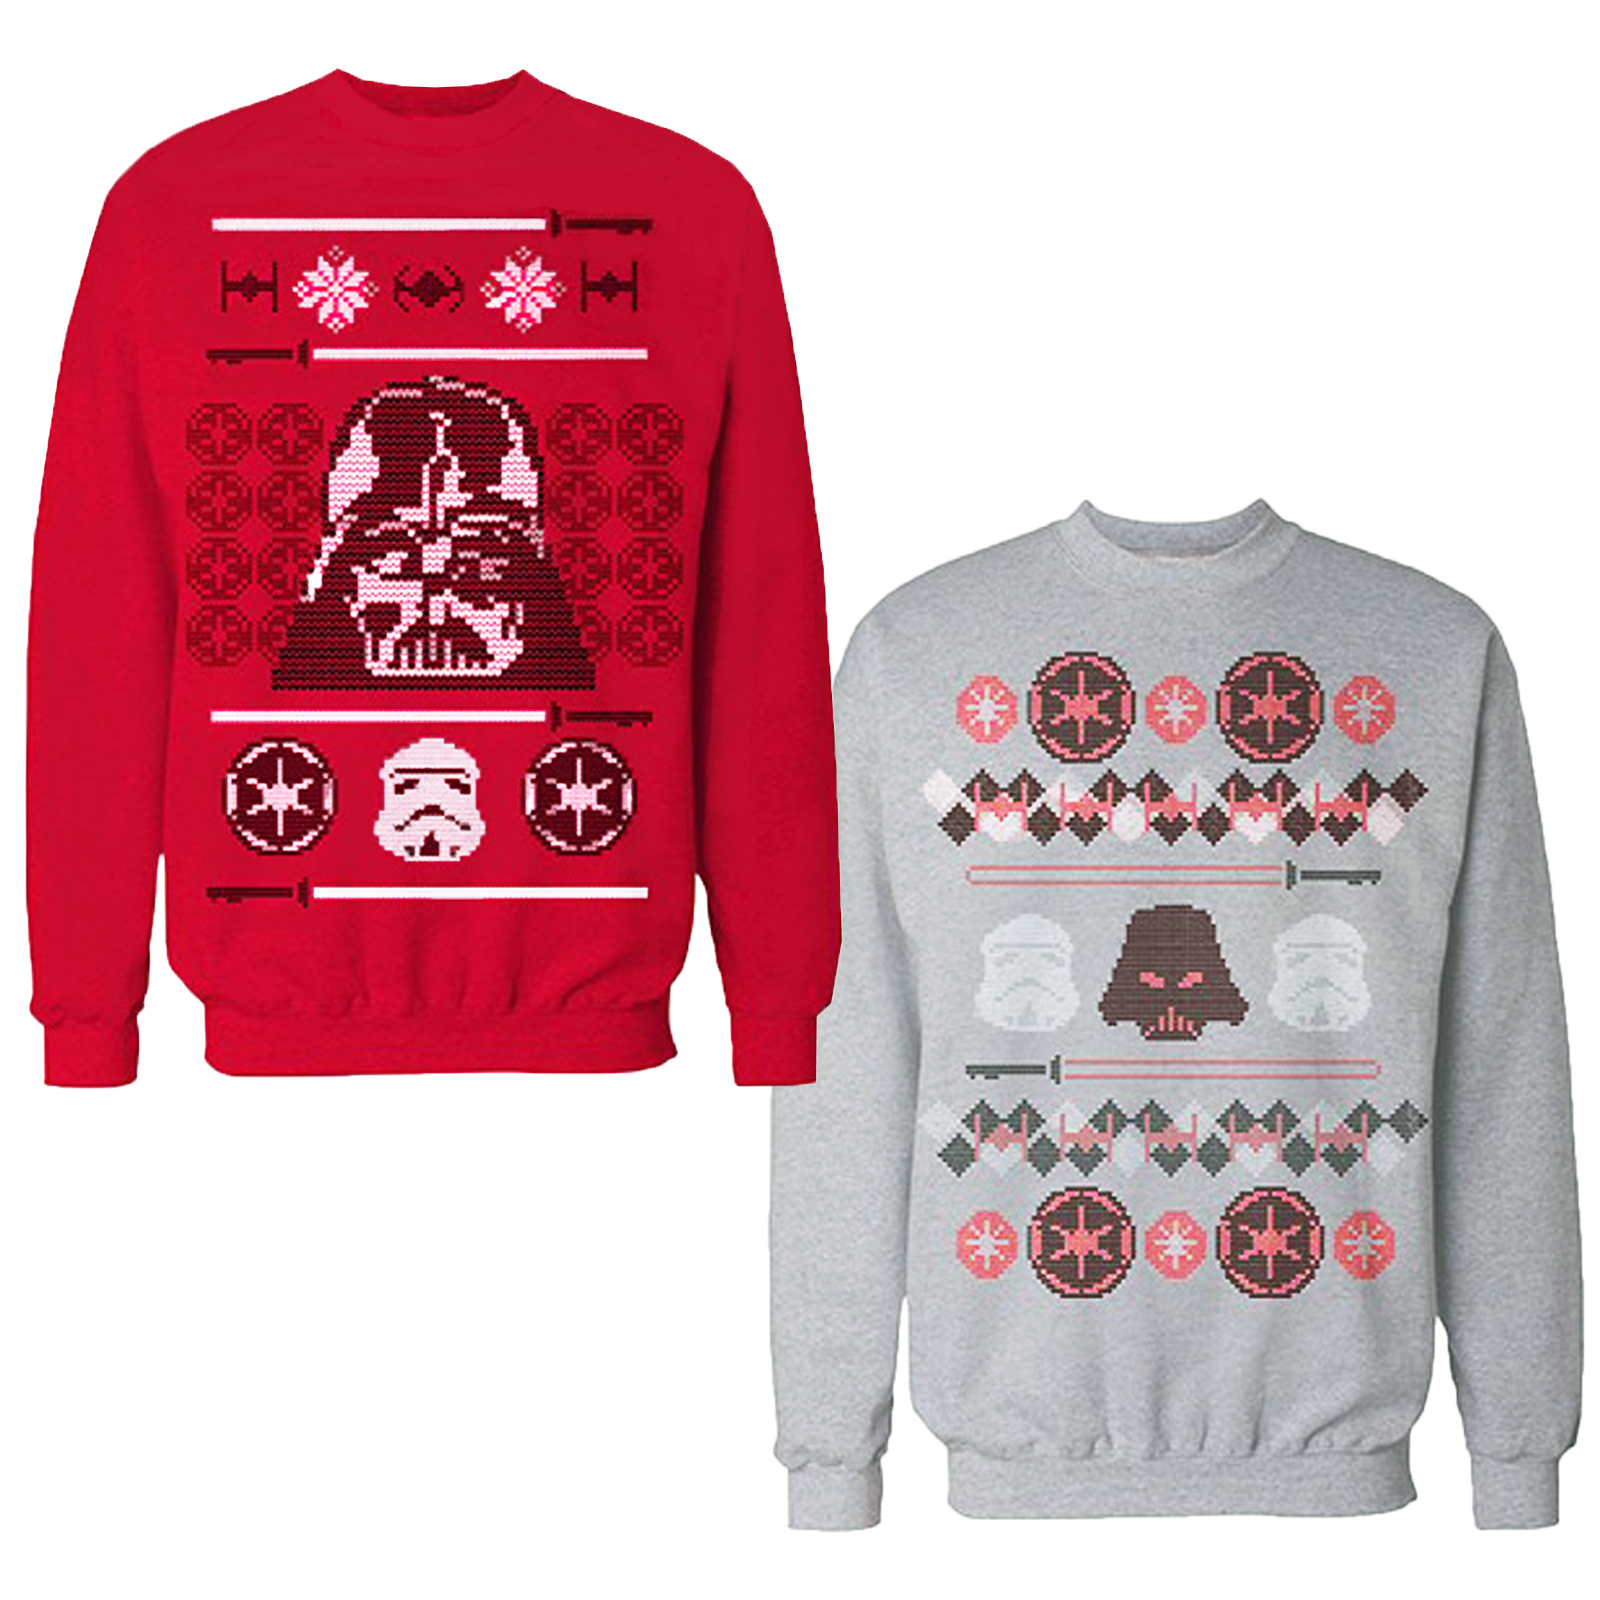 star wars weihnachten pulli erwachsene darth vader. Black Bedroom Furniture Sets. Home Design Ideas